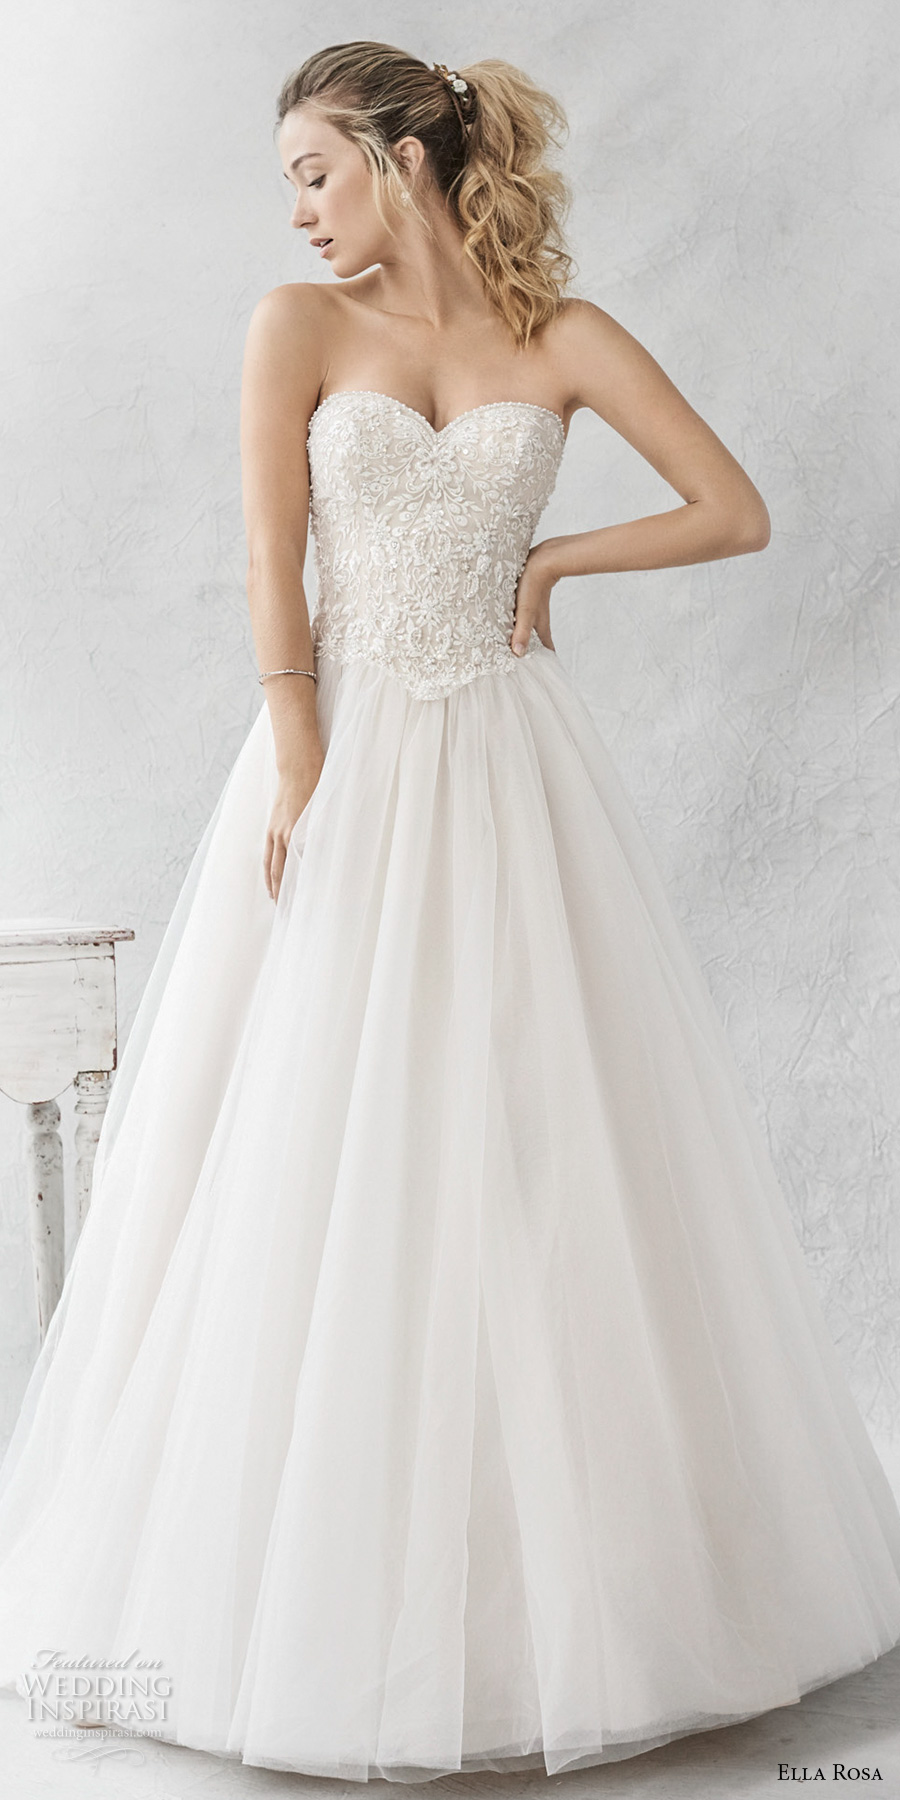 ella rosa spring 2017 bridal strapless sweetheart neckline heavily embellished bodice tulle skirt romantic a line wedding dress chapel train (368) mv